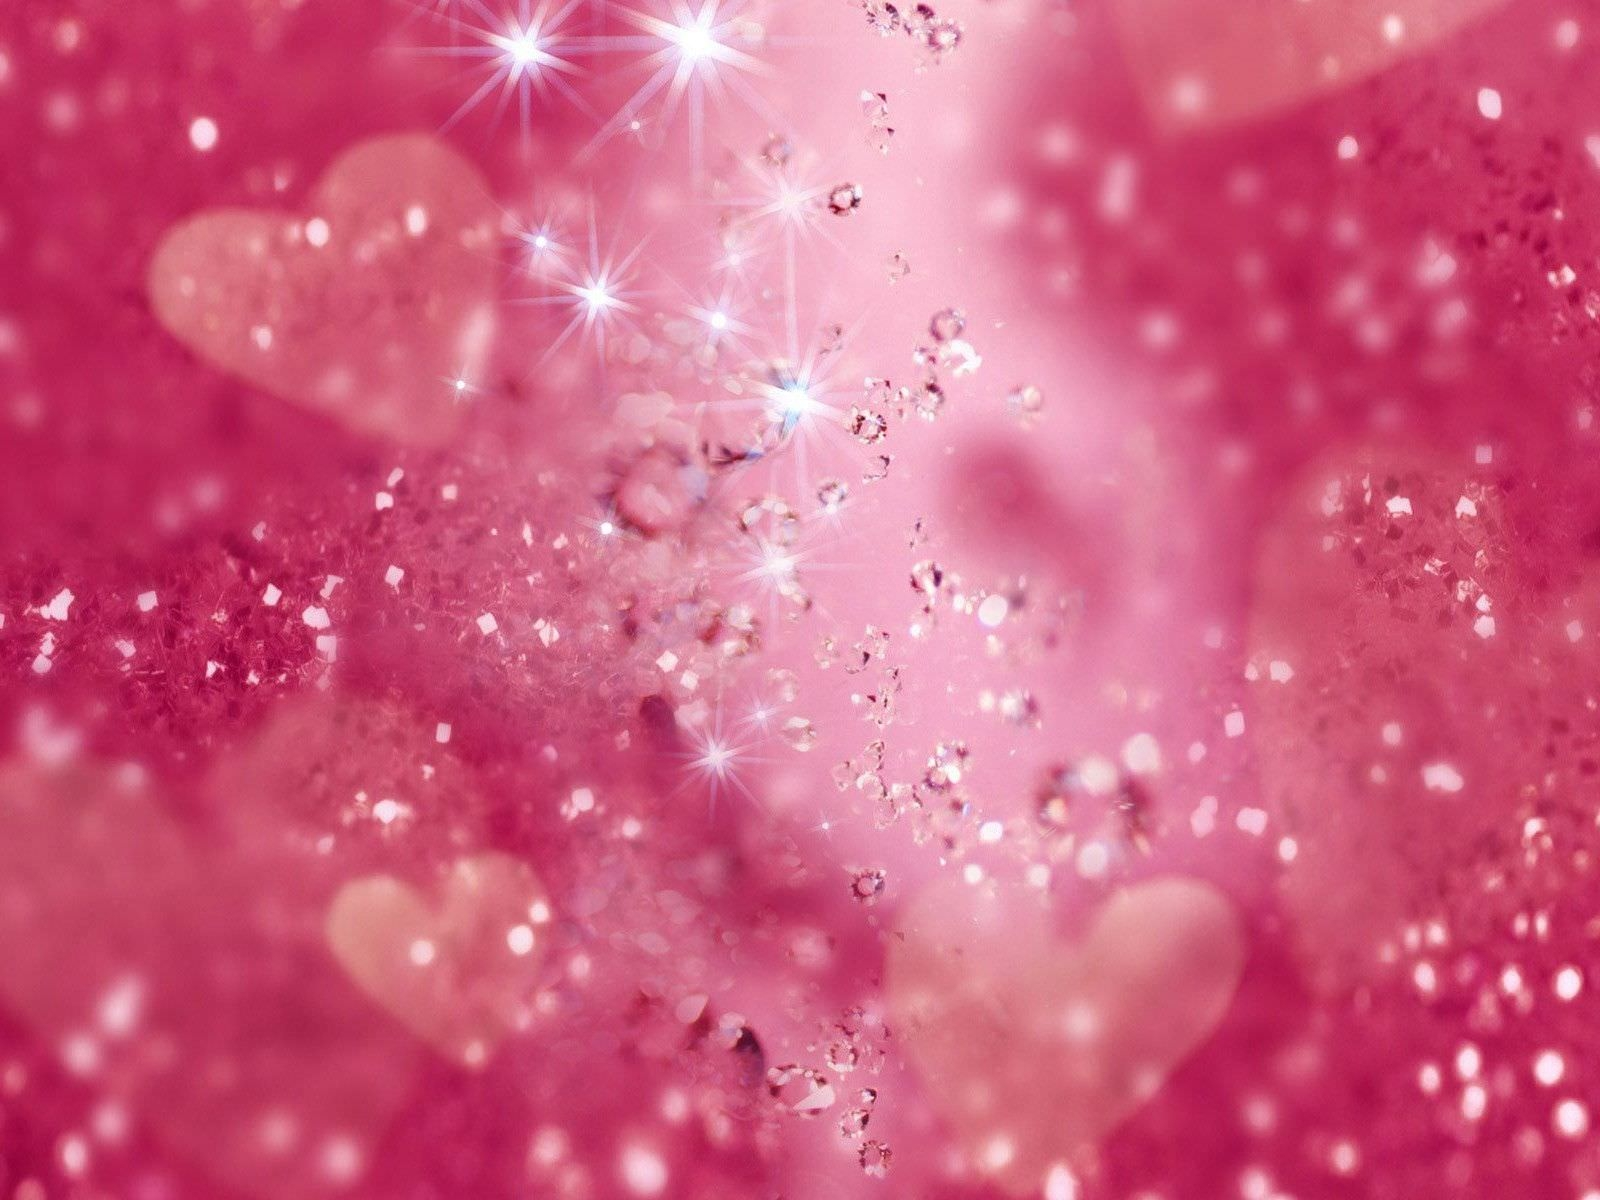 Sparkle and Glitters Background Wallpaper